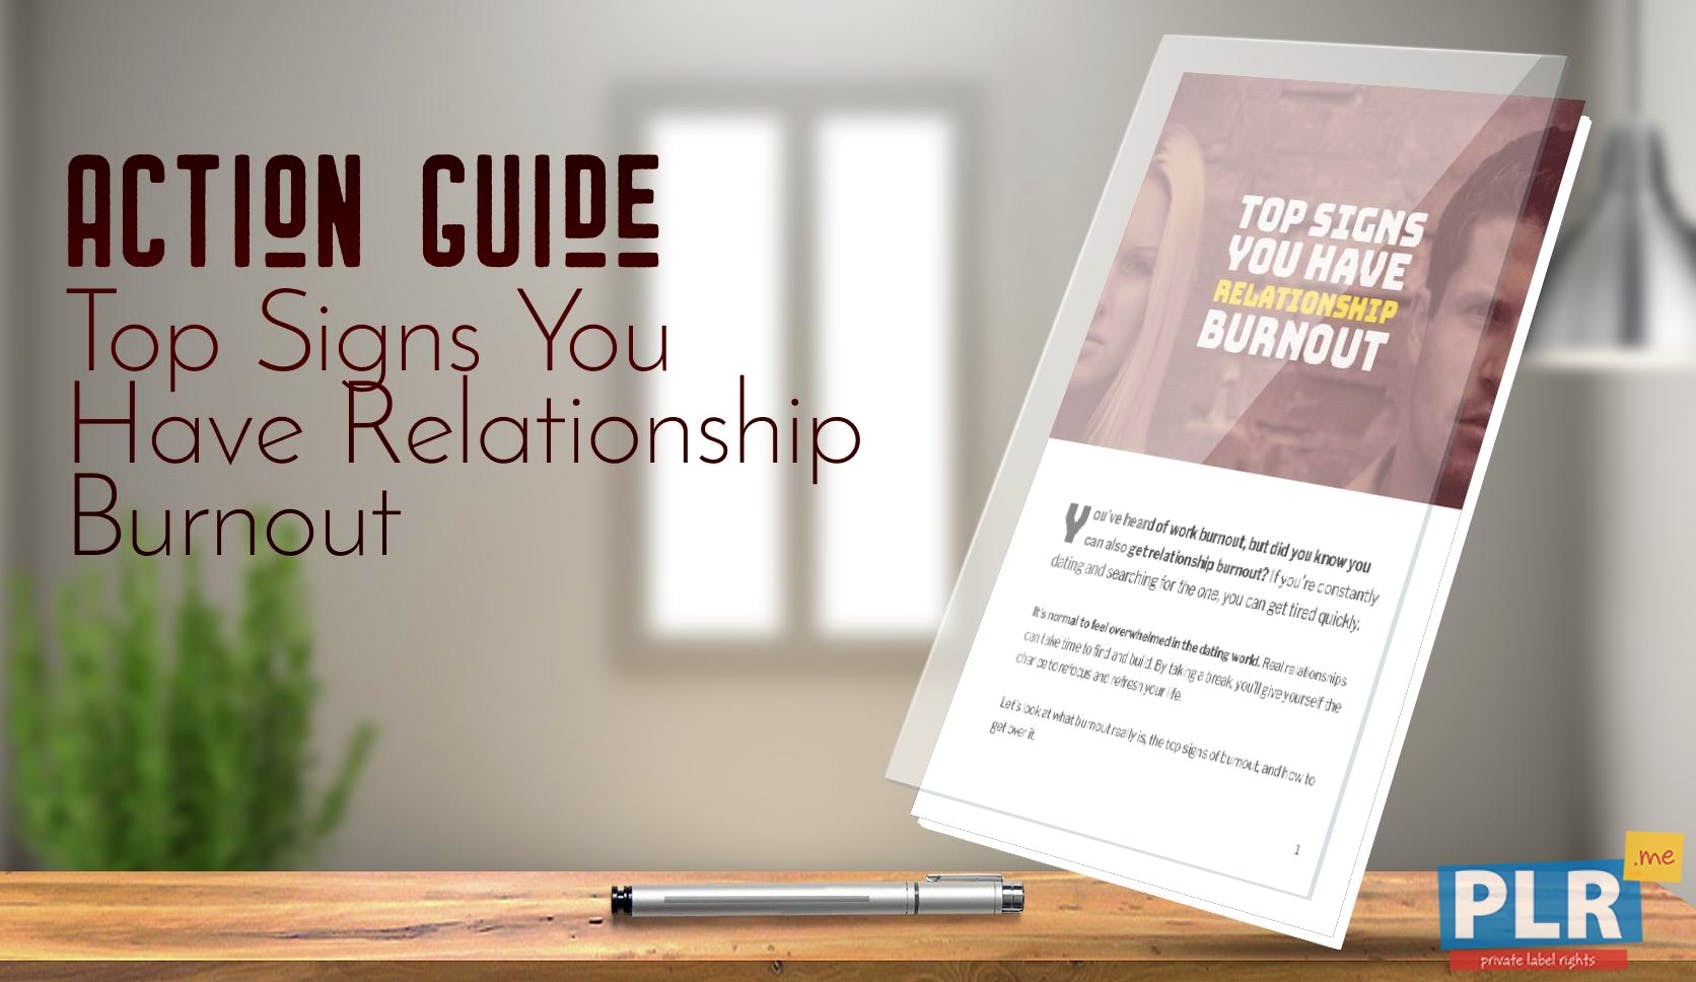 Top Signs You Have Relationship Burnout